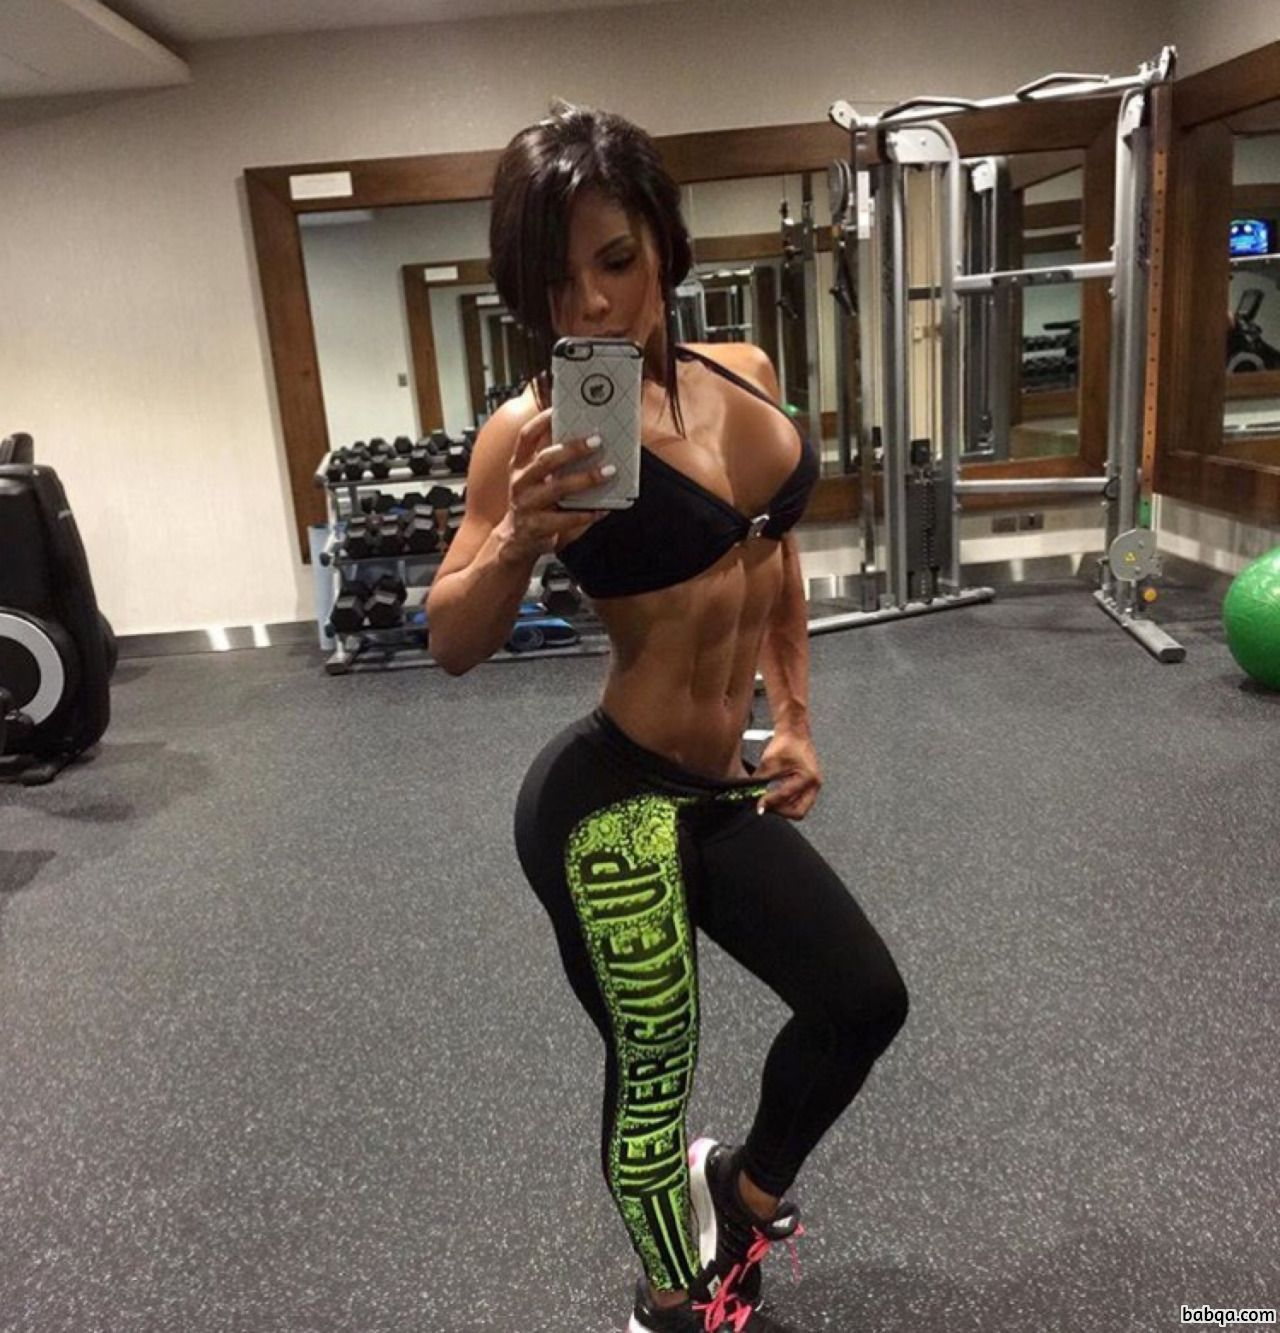 butthole selfies repost from womenfitnessmodels – s perfect girl